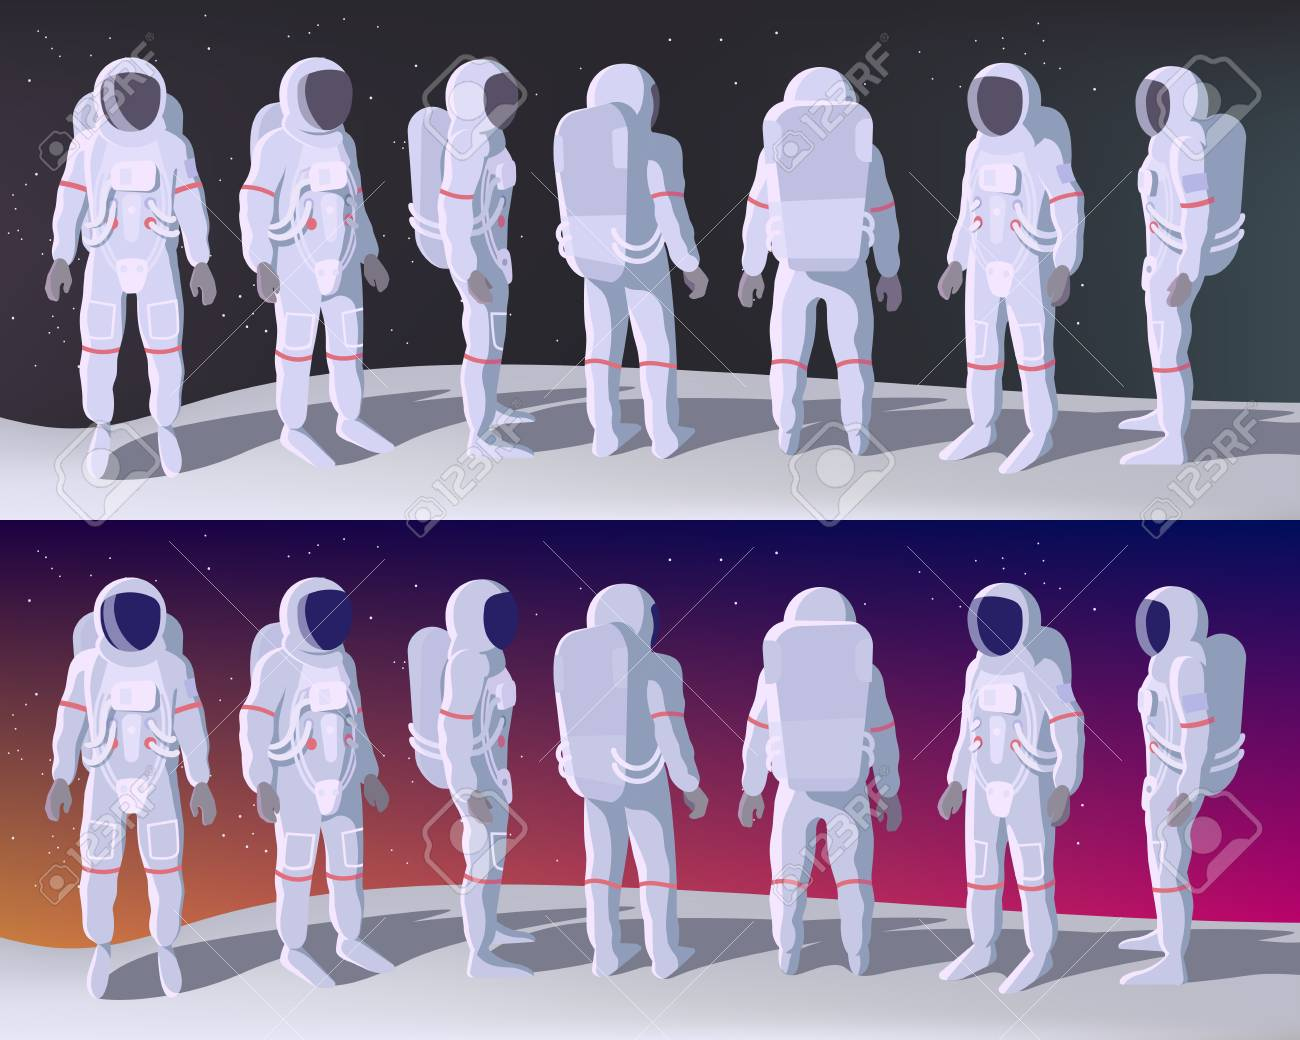 Astronaut in Different Positions Stands on the Moon with Space Behind. Cartoon or Flat Vector illustration - 116947172